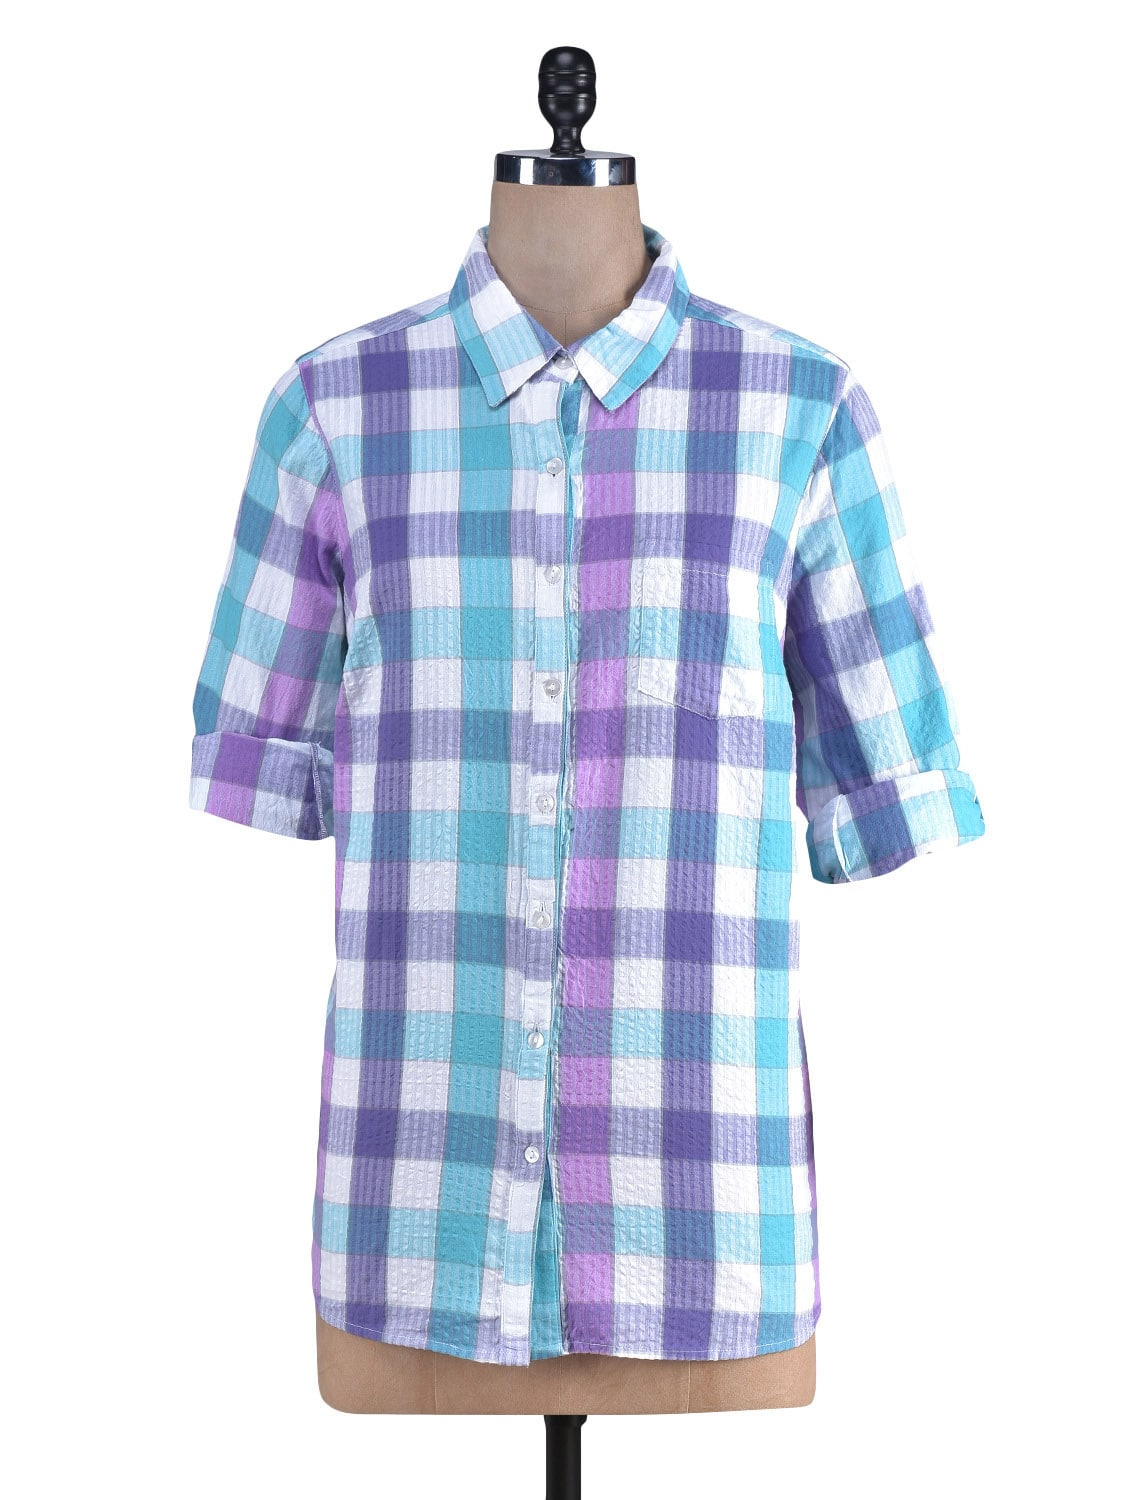 Multicolor Yarn Dyed Checks Printed Cotton Shirt - By